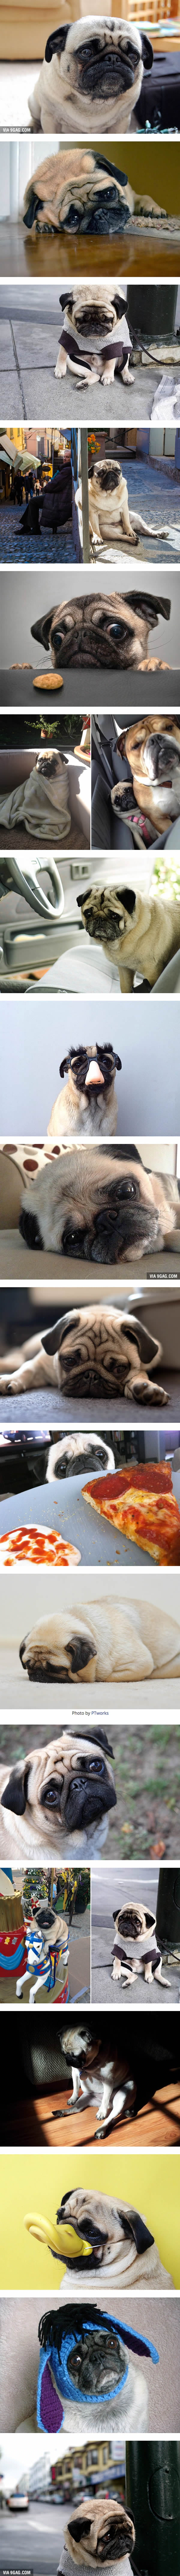 These Extremely Sad Pugs Will Make Your Heart Melt